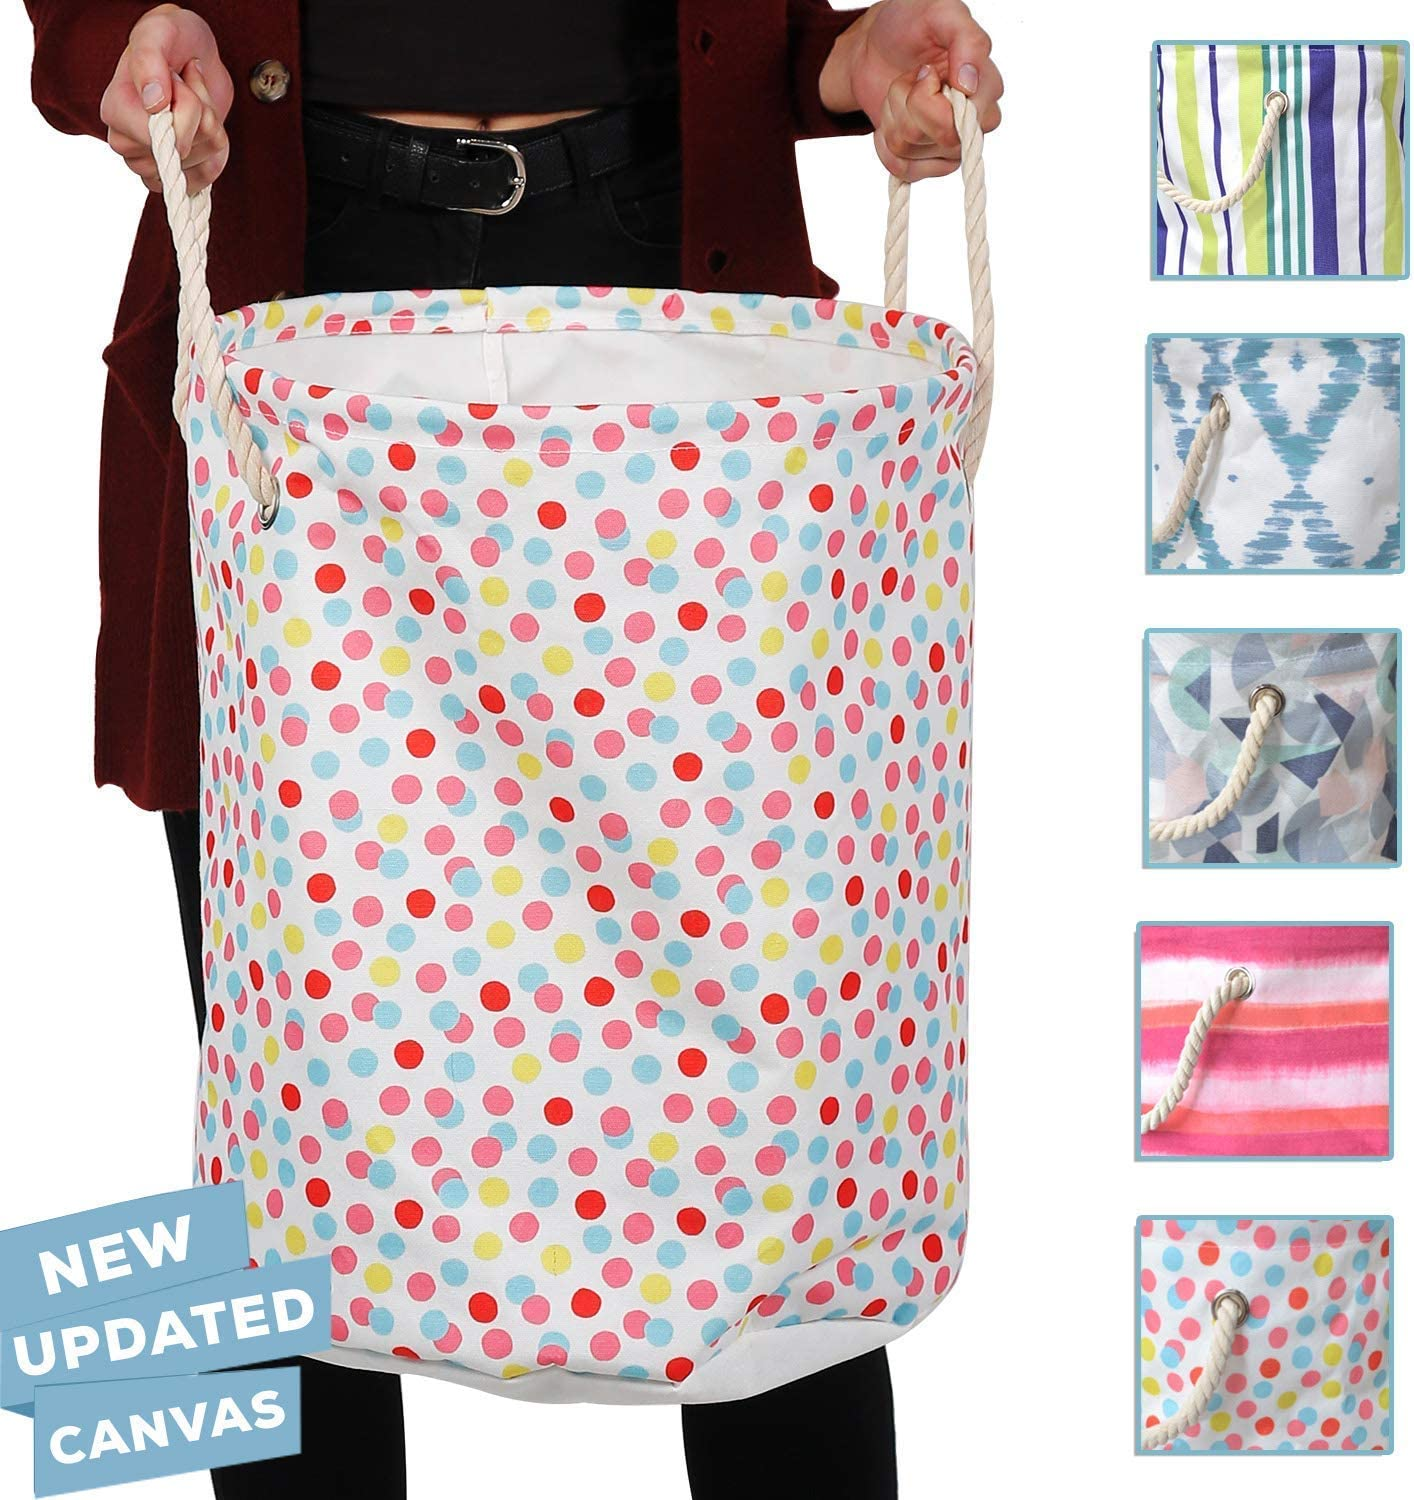 86 York Designer Laundry Hampers with Rope Handles (Polka Dots)